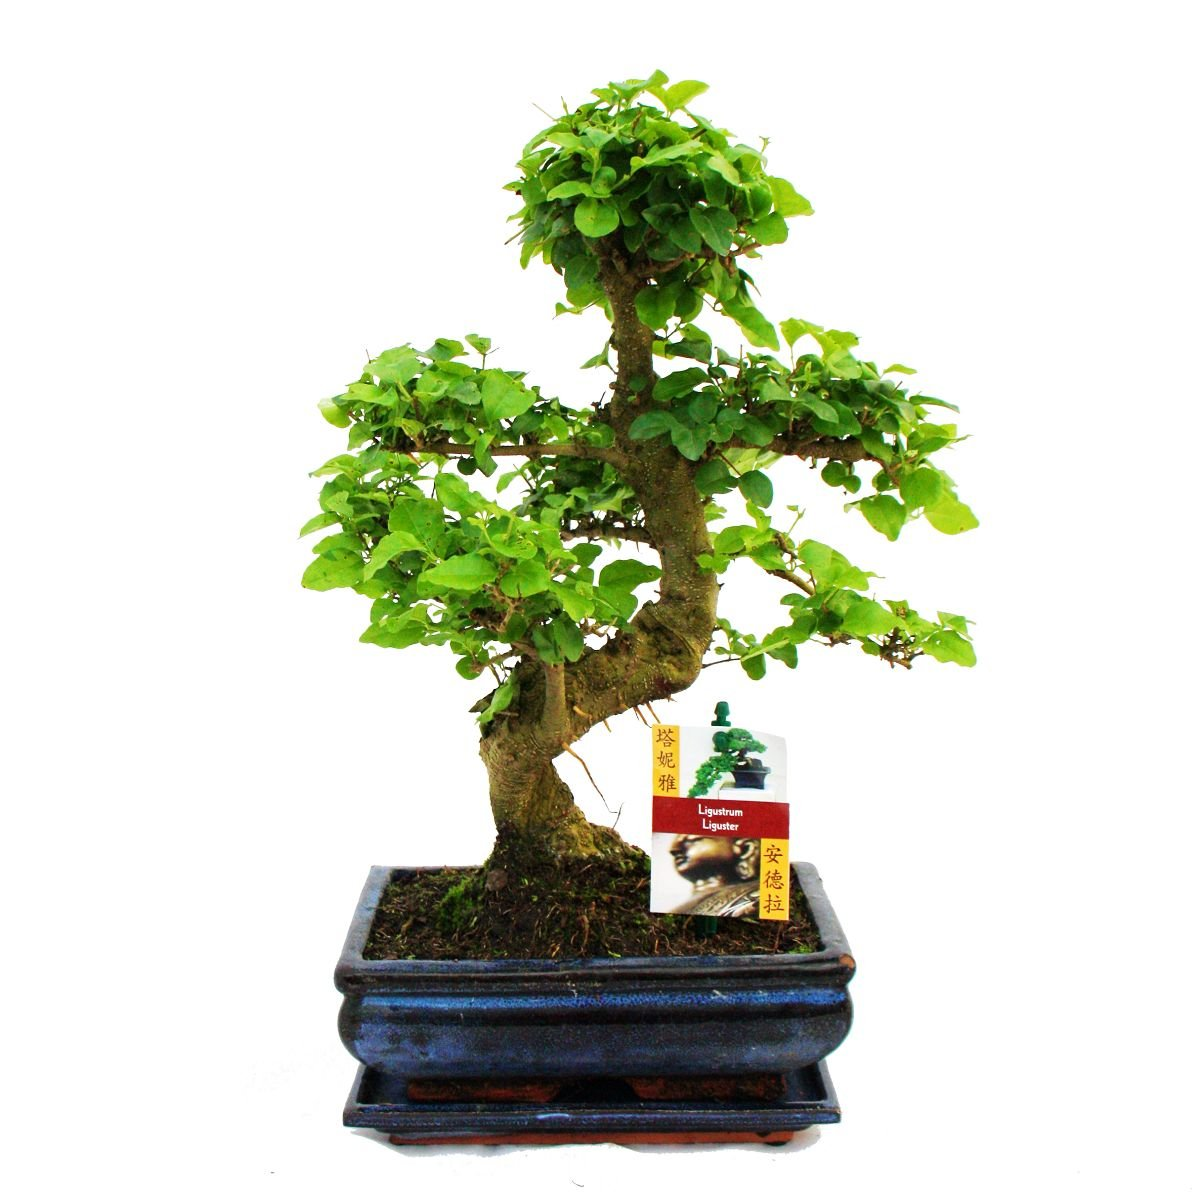 Bonsai Ligustrum 9 yrs old - 1 tree Gardens4you